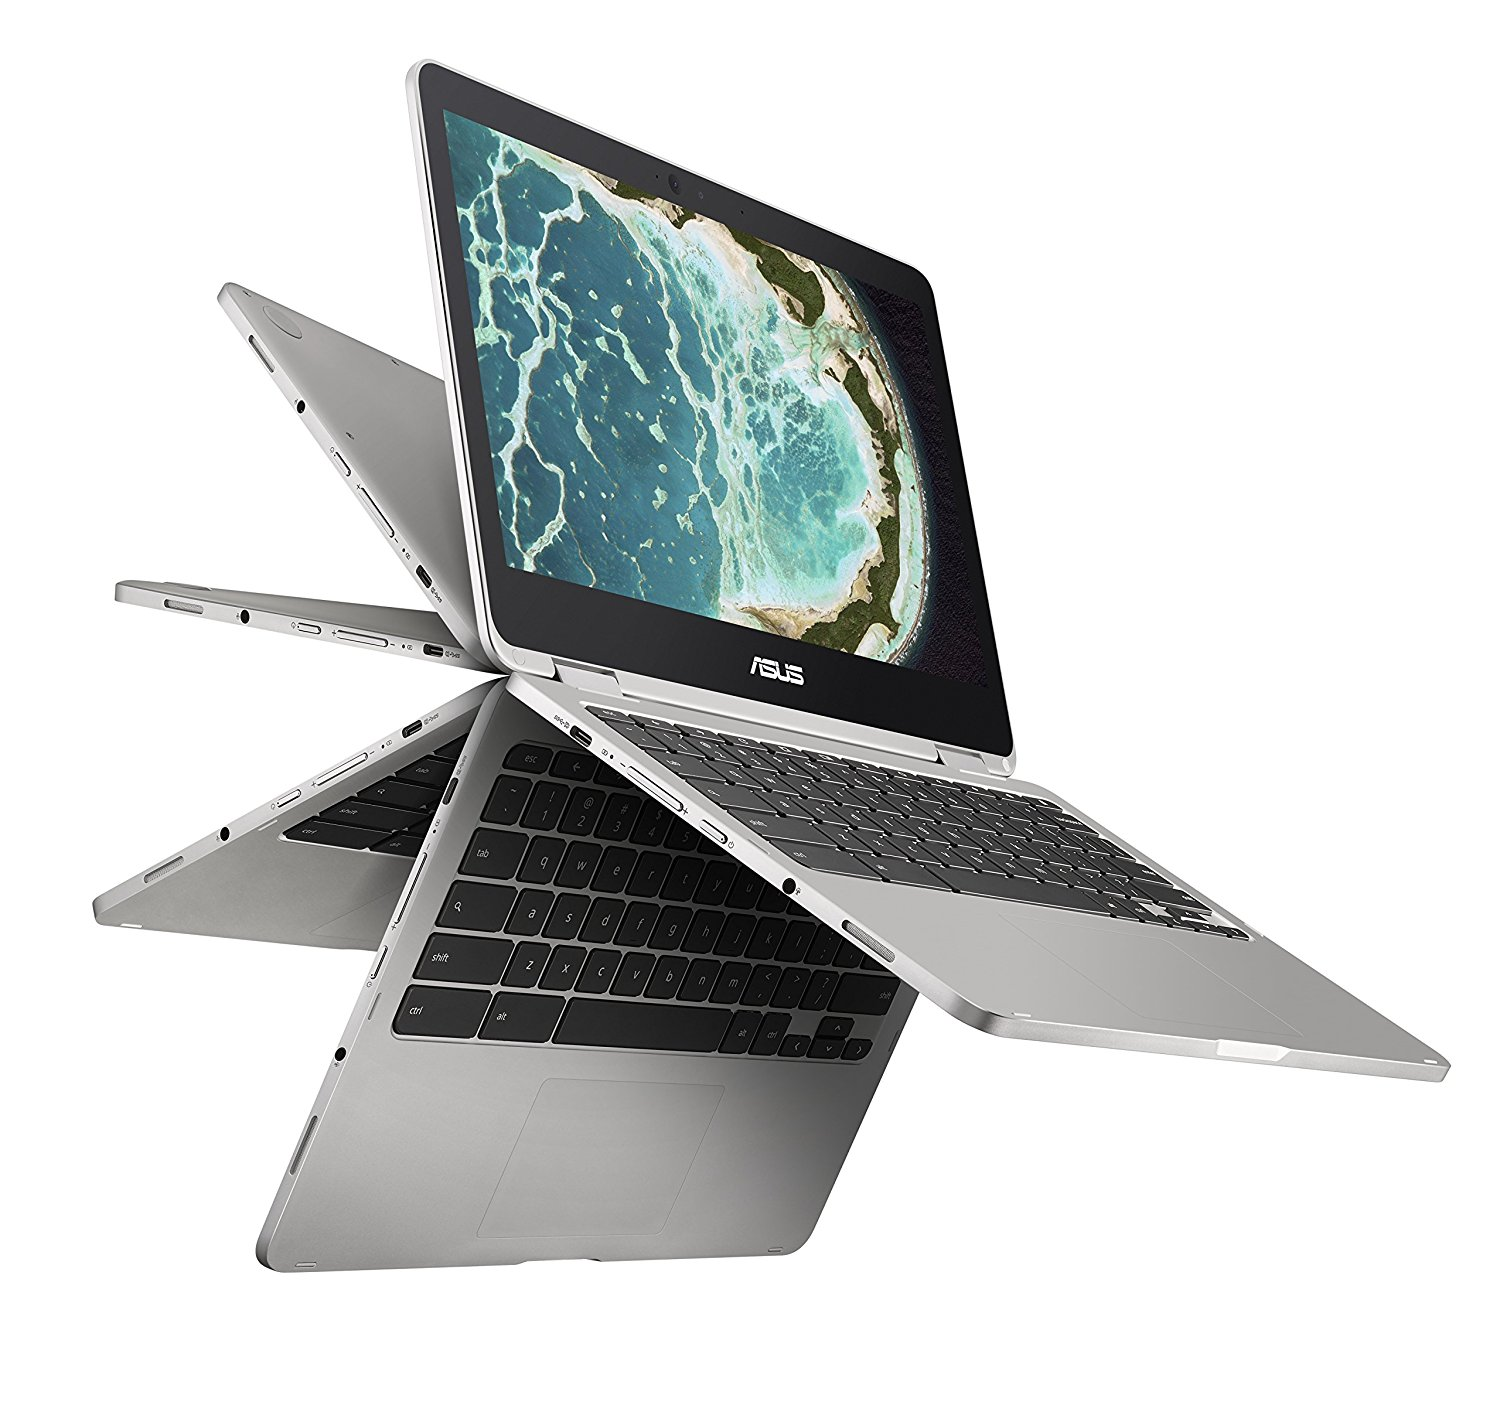 ASUS Chromebook Flip - Available in Core m3, Core m3 + G Suite Trial & Core m5 Styles